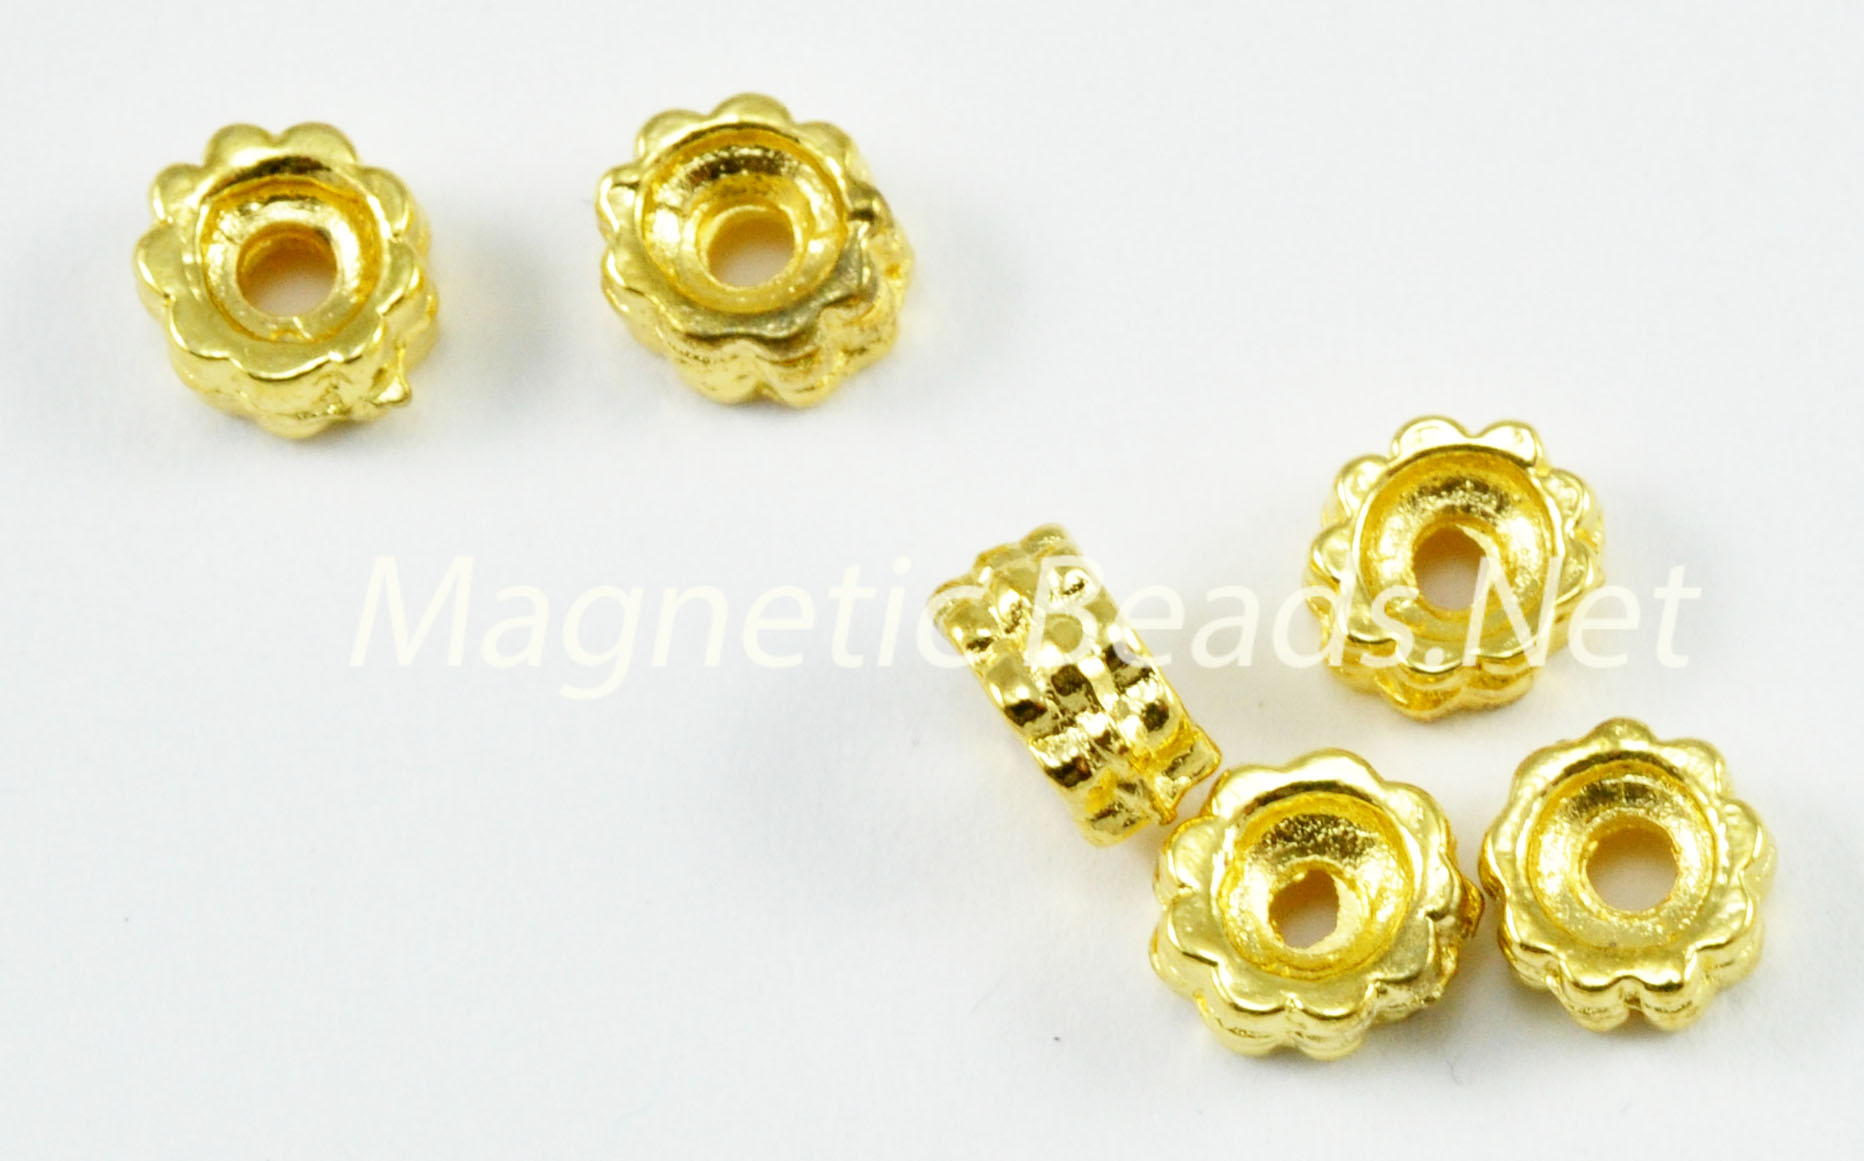 Metal Findings/Spacers 6x3M Gold Roundel Spacer(F-64)